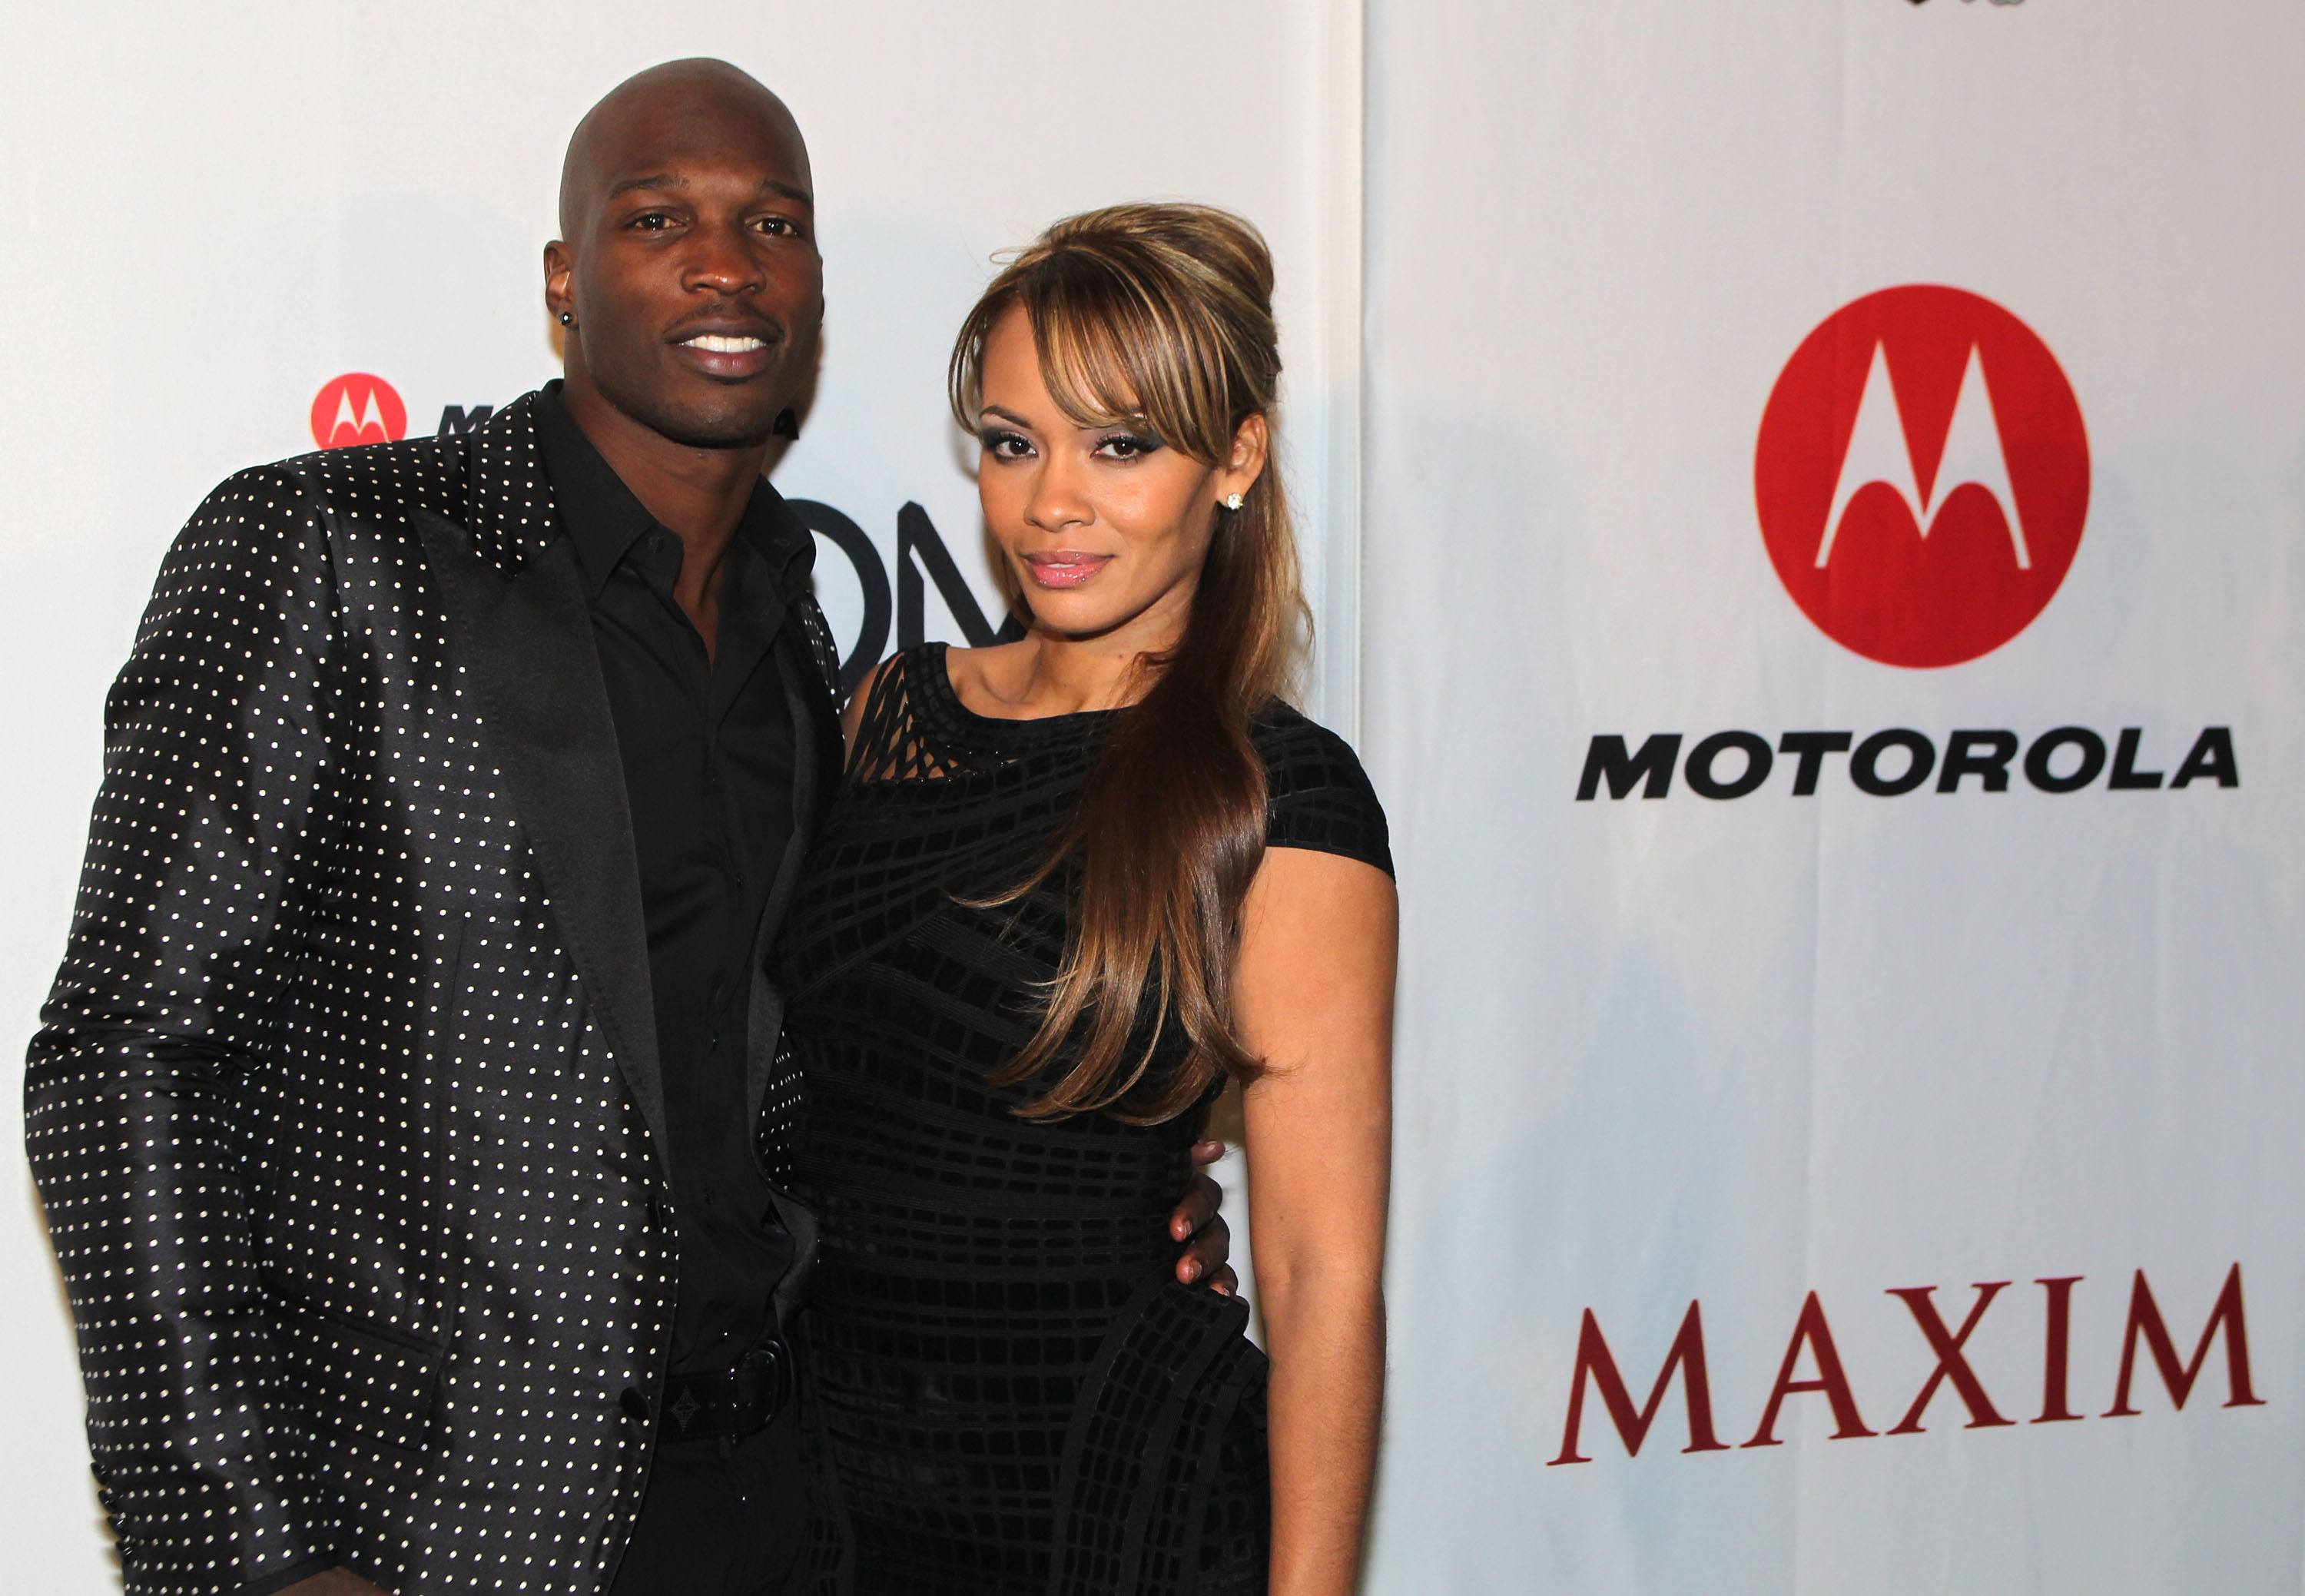 NFL player Chad Ochocinco and Evelyn Lozada pose with Motorola Xoom at the Maxim Party Powered by Motorola Xoom at Centennial Hall at Fair Park on February 5, 2011 in Dallas, Texas